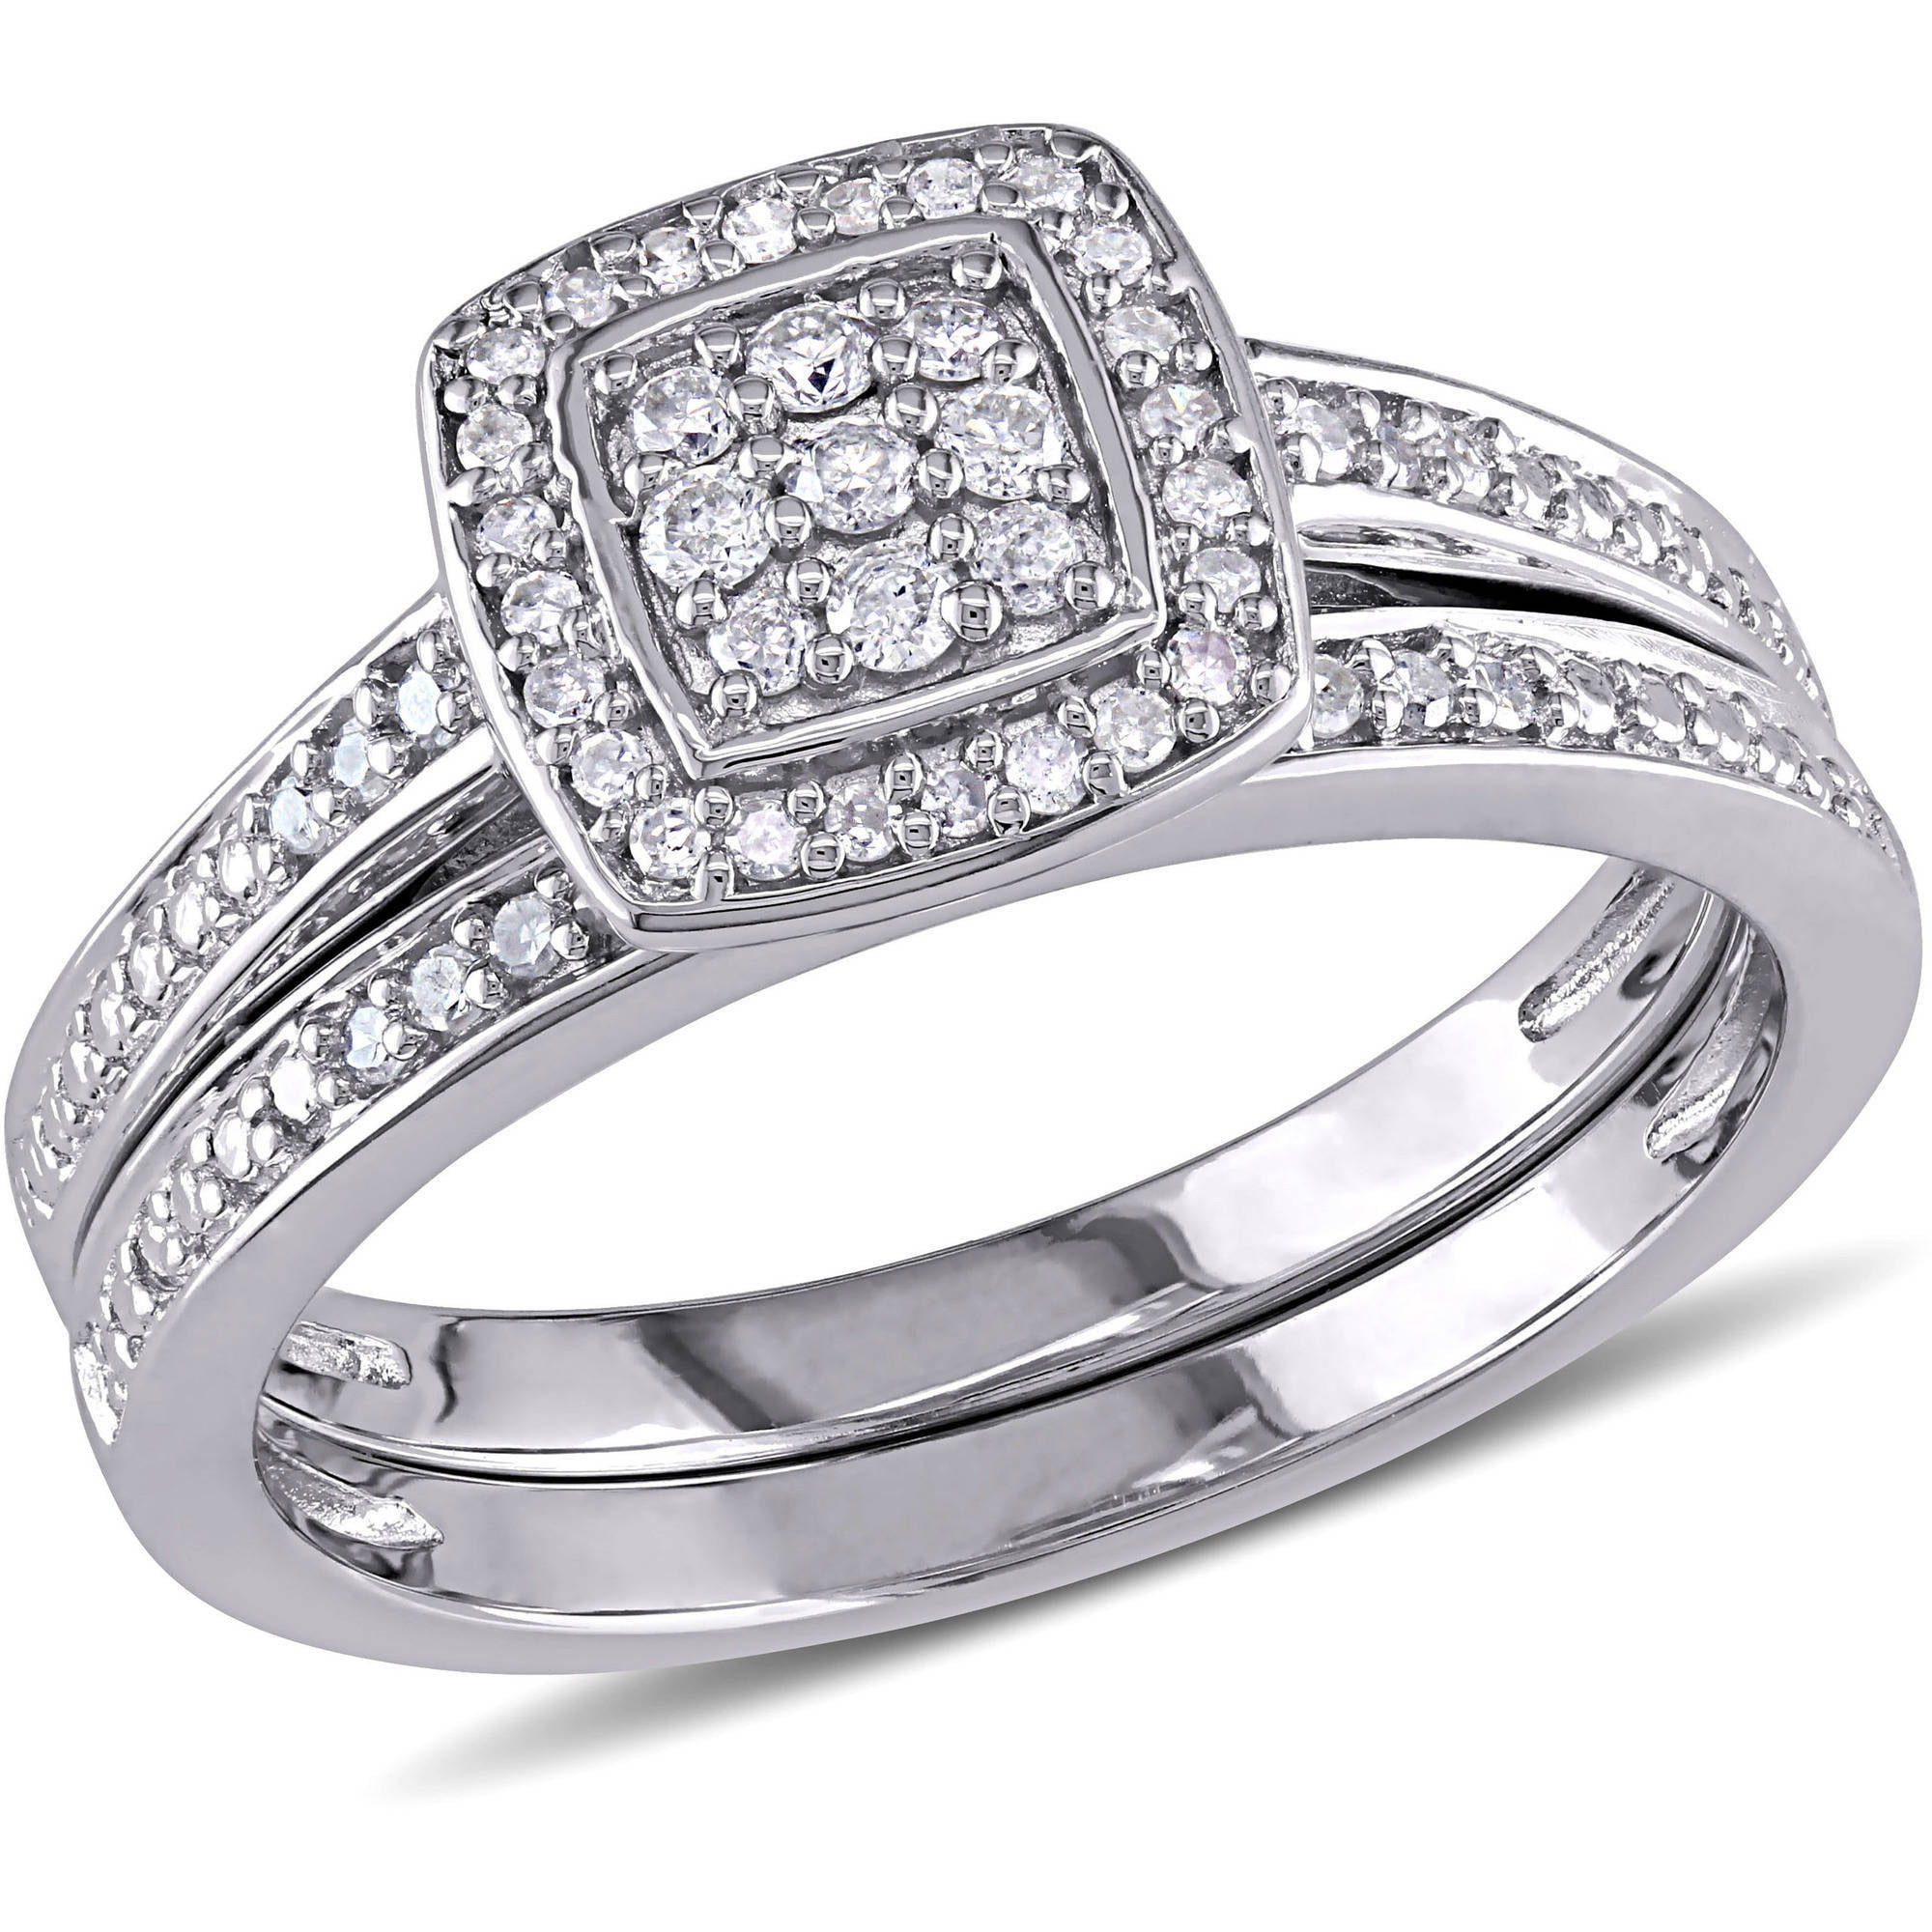 Miabella 1 4 Carat T W Diamond Sterling Silver Bridal Ring Set